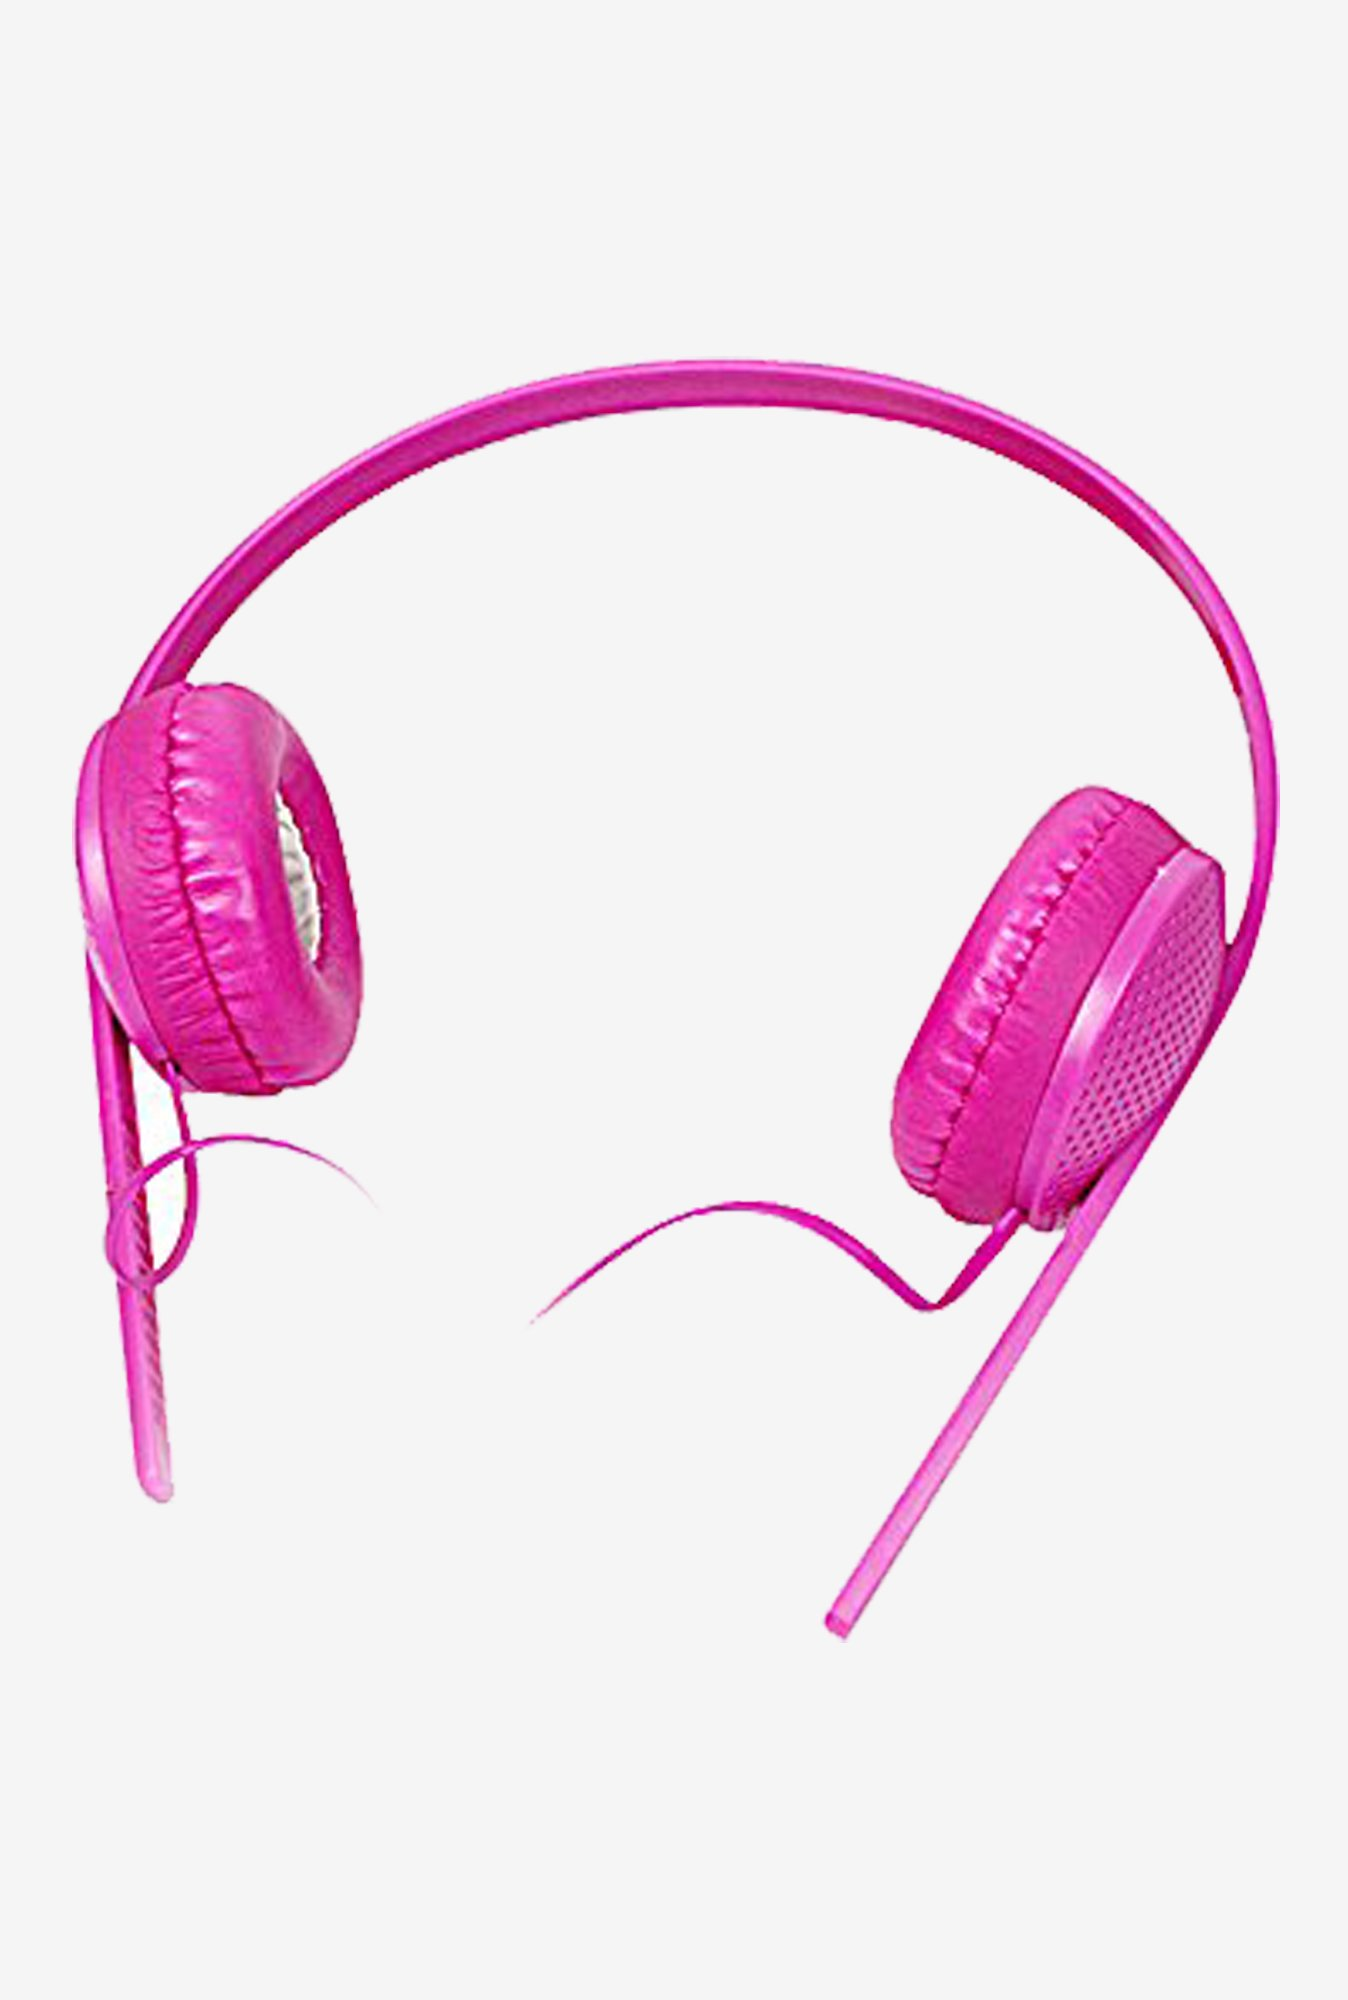 KolorEdge 4354-Headphone39Pink Stereo Sound (Pink)